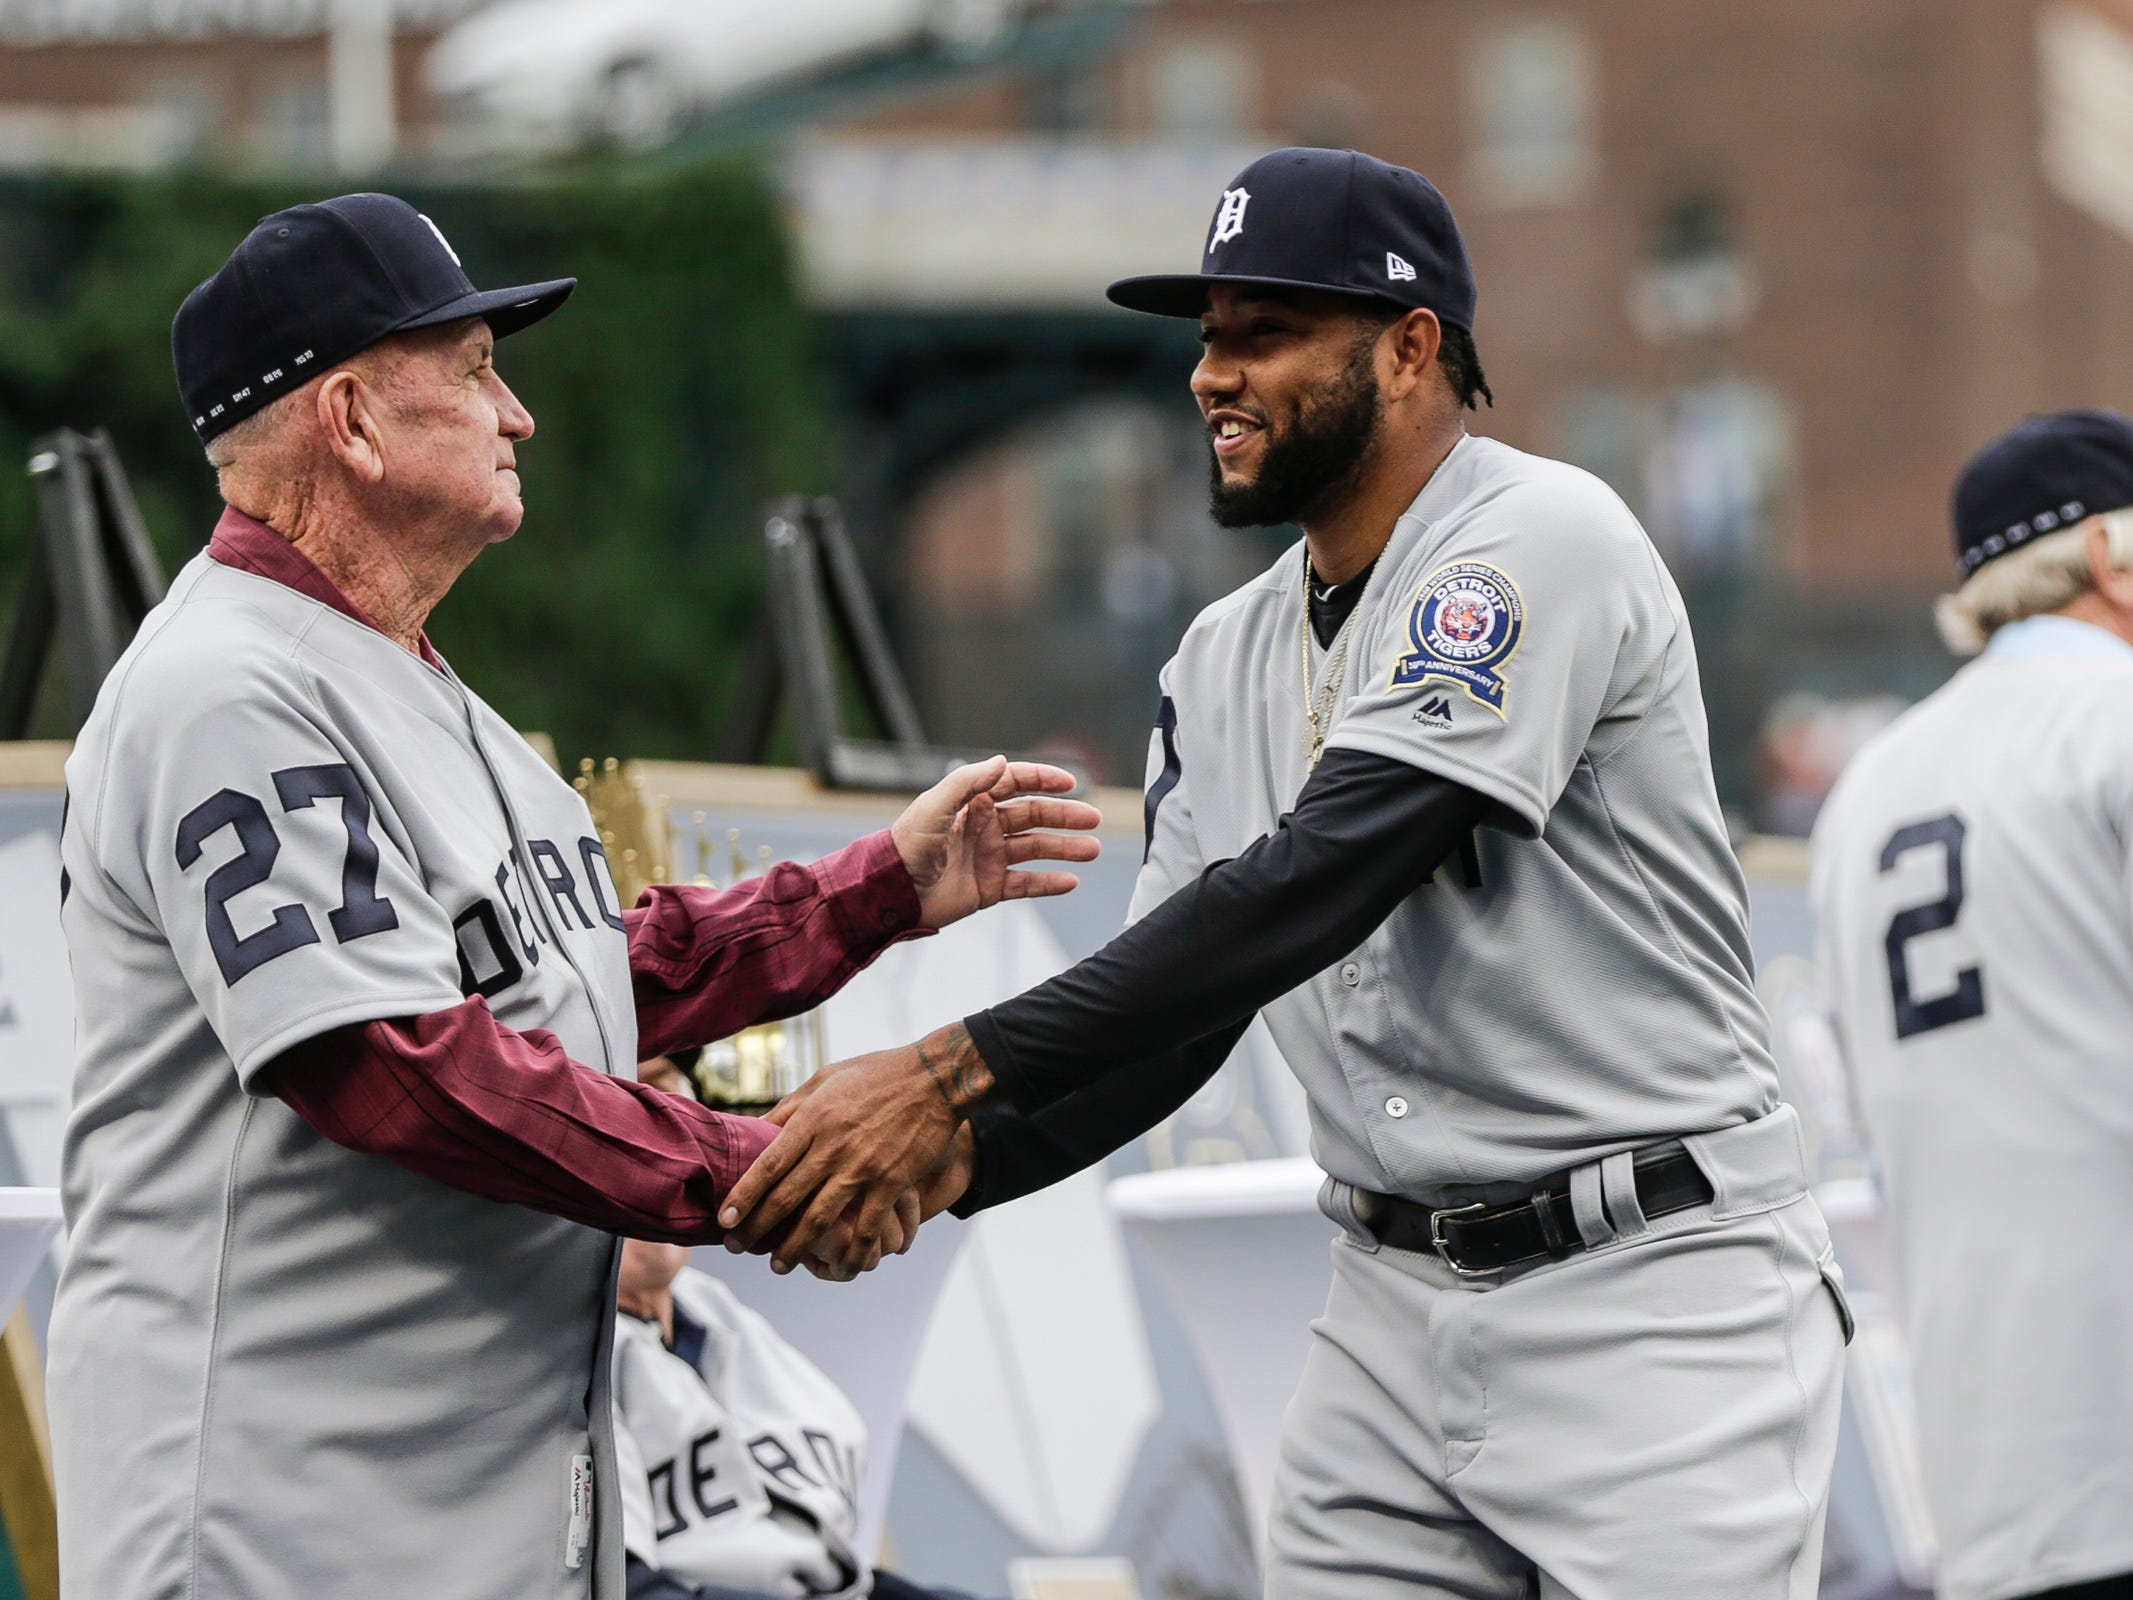 Detroit Tigers infielder Ronny Rodriguez (60), right, shakes hands with former Tigers outfielder Wayne Comer (27) during Detroit Tigers celebration of the 50th anniversary of 1968 World Series championship at Comerica Park in Detroit, Saturday, Sept. 8, 2018.